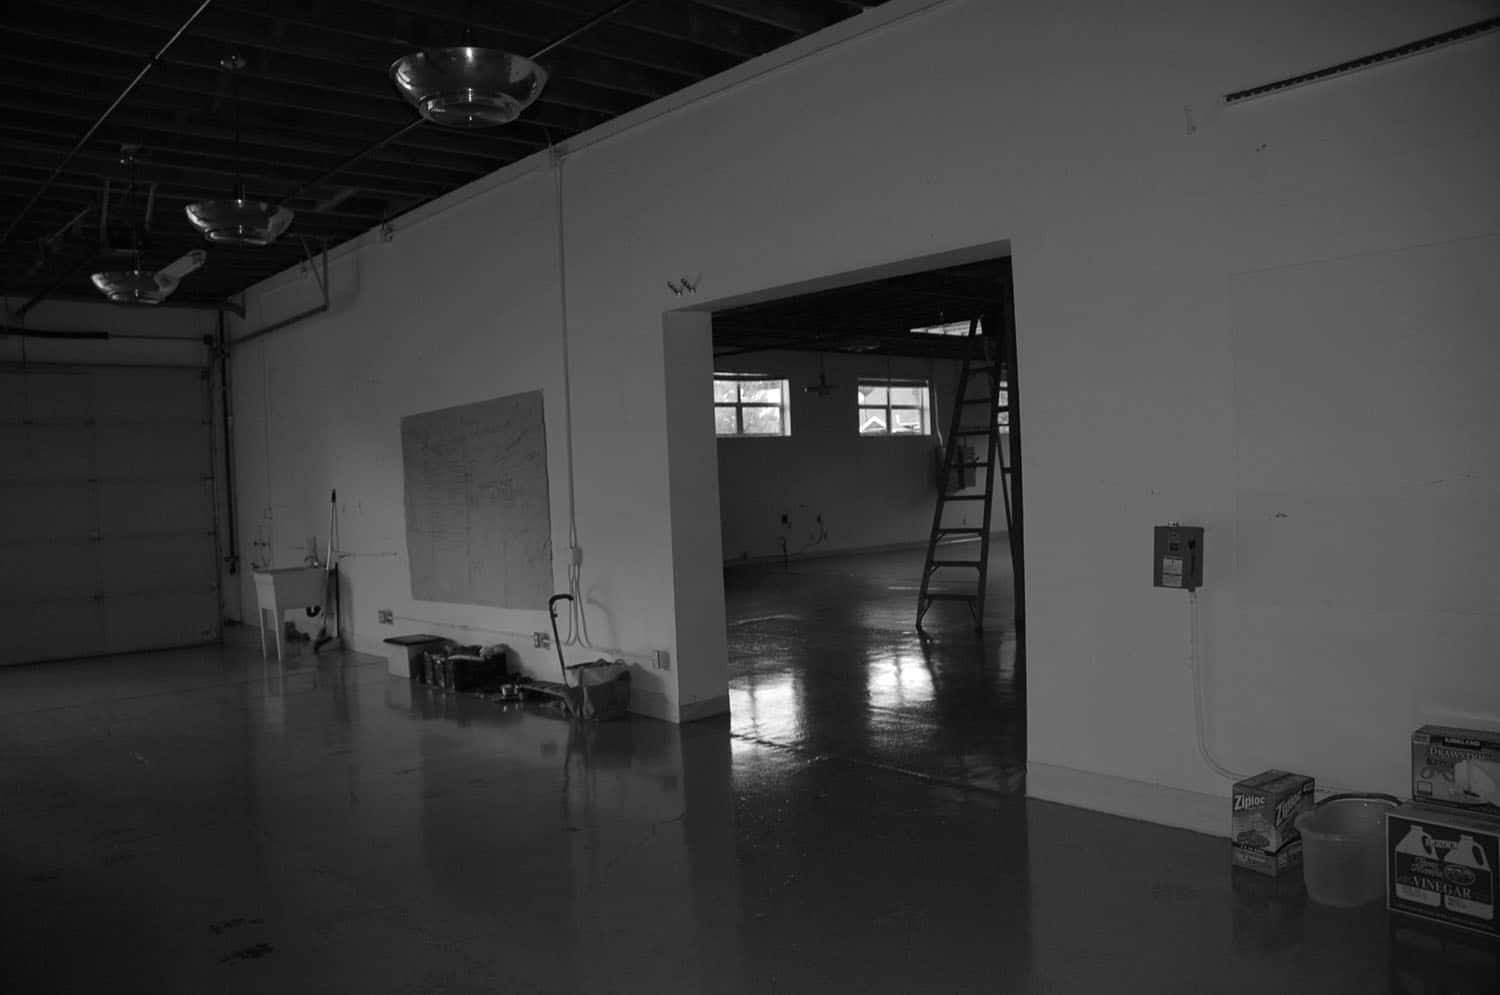 industrial-interior-first-floor-before-remodel